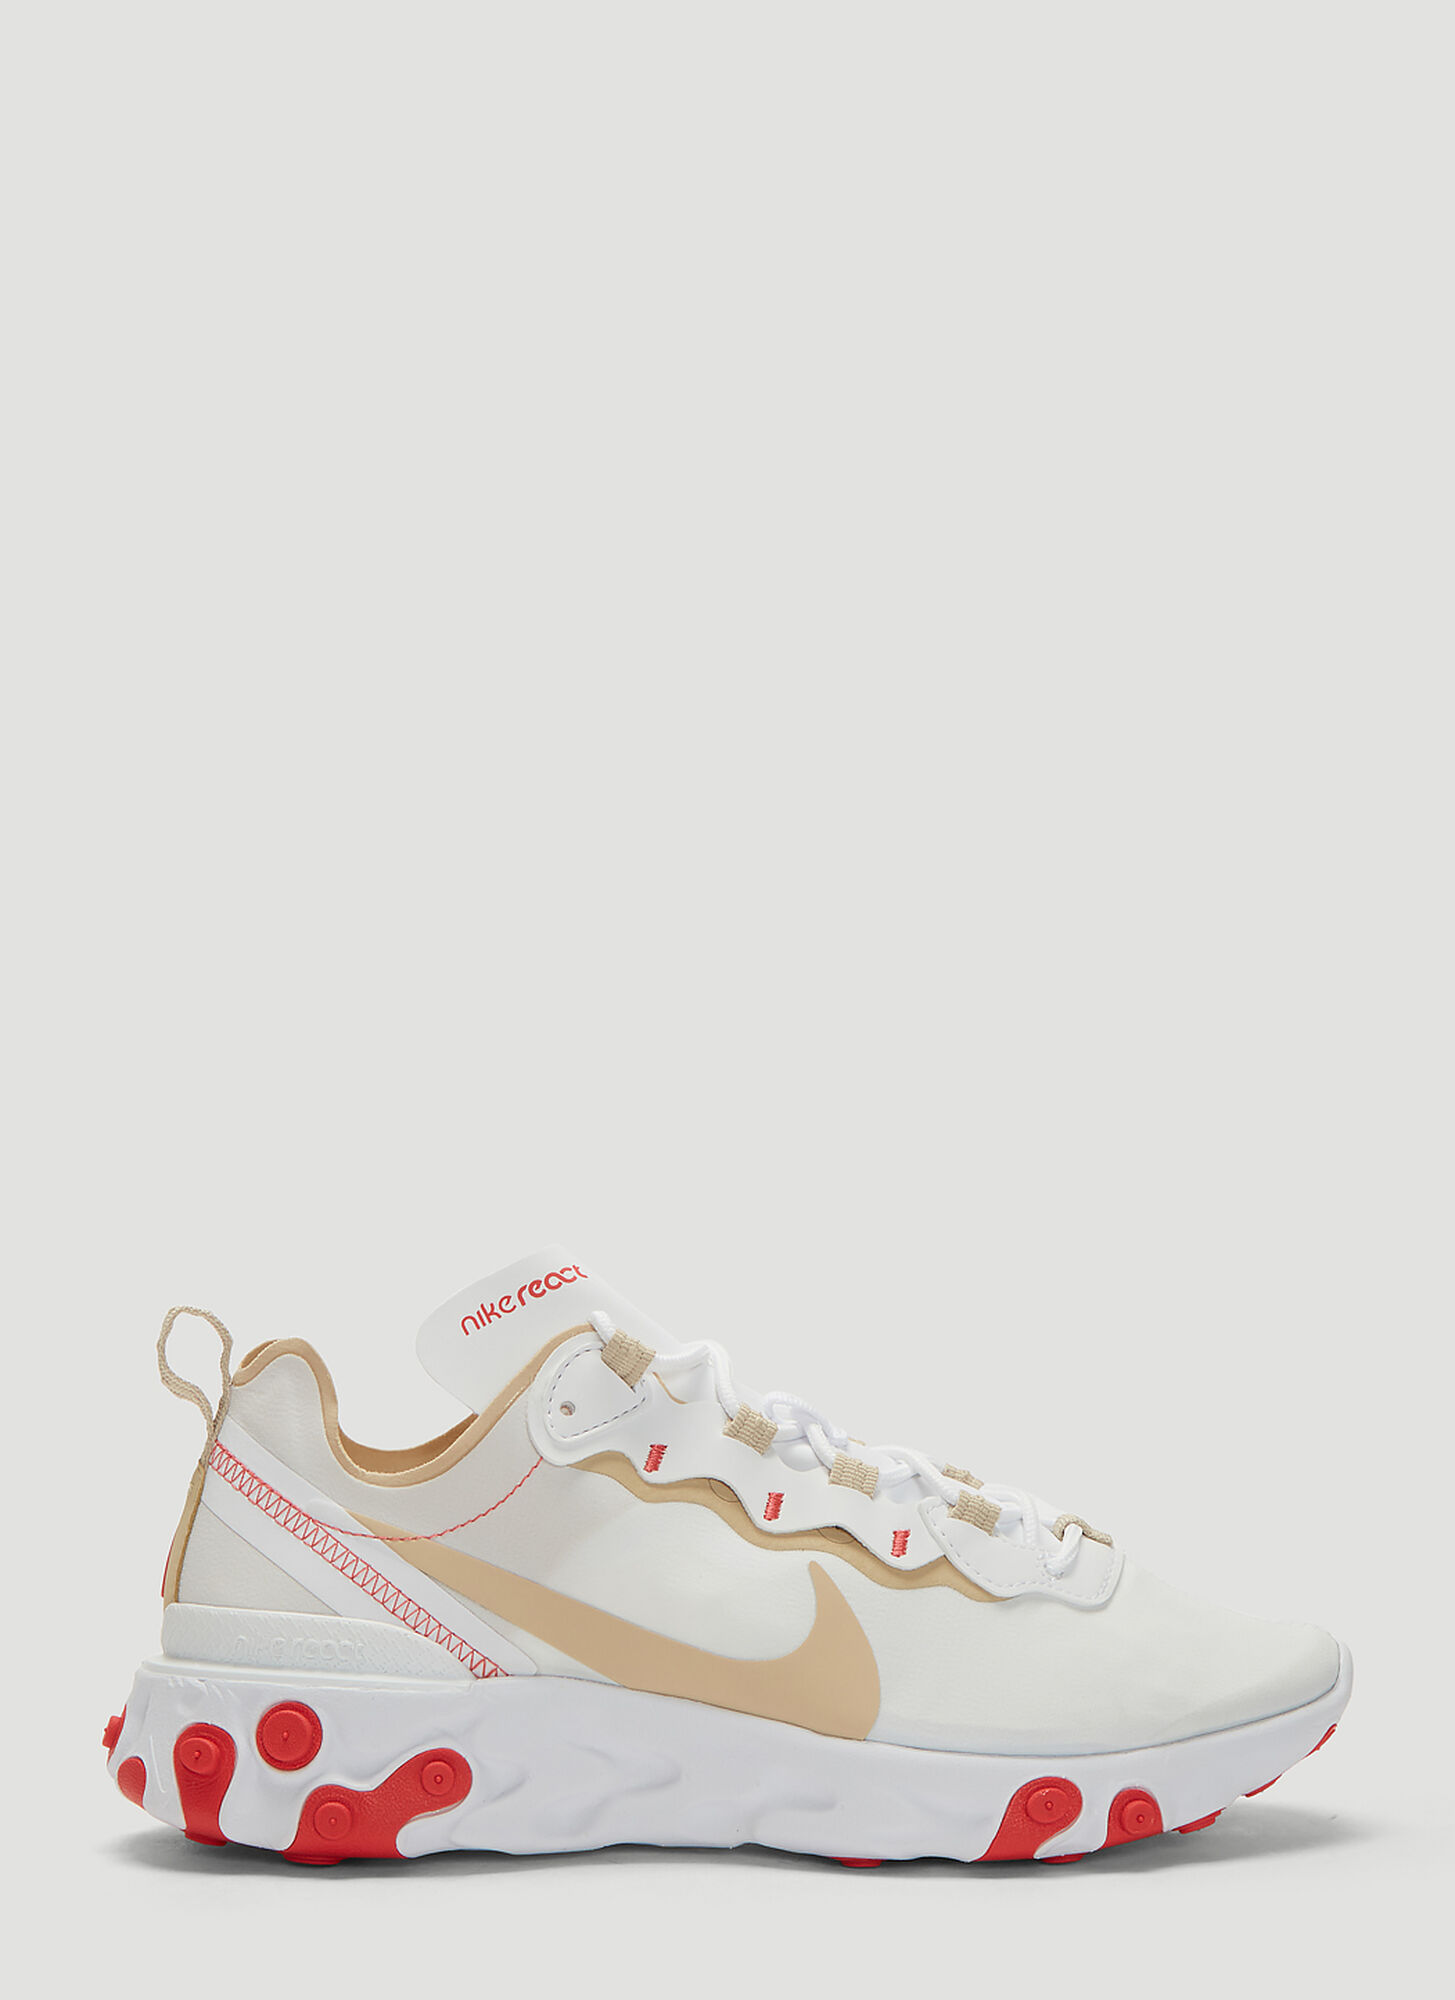 Photo of Nike React Element 55 Sneakers in White - Nike Sneakers